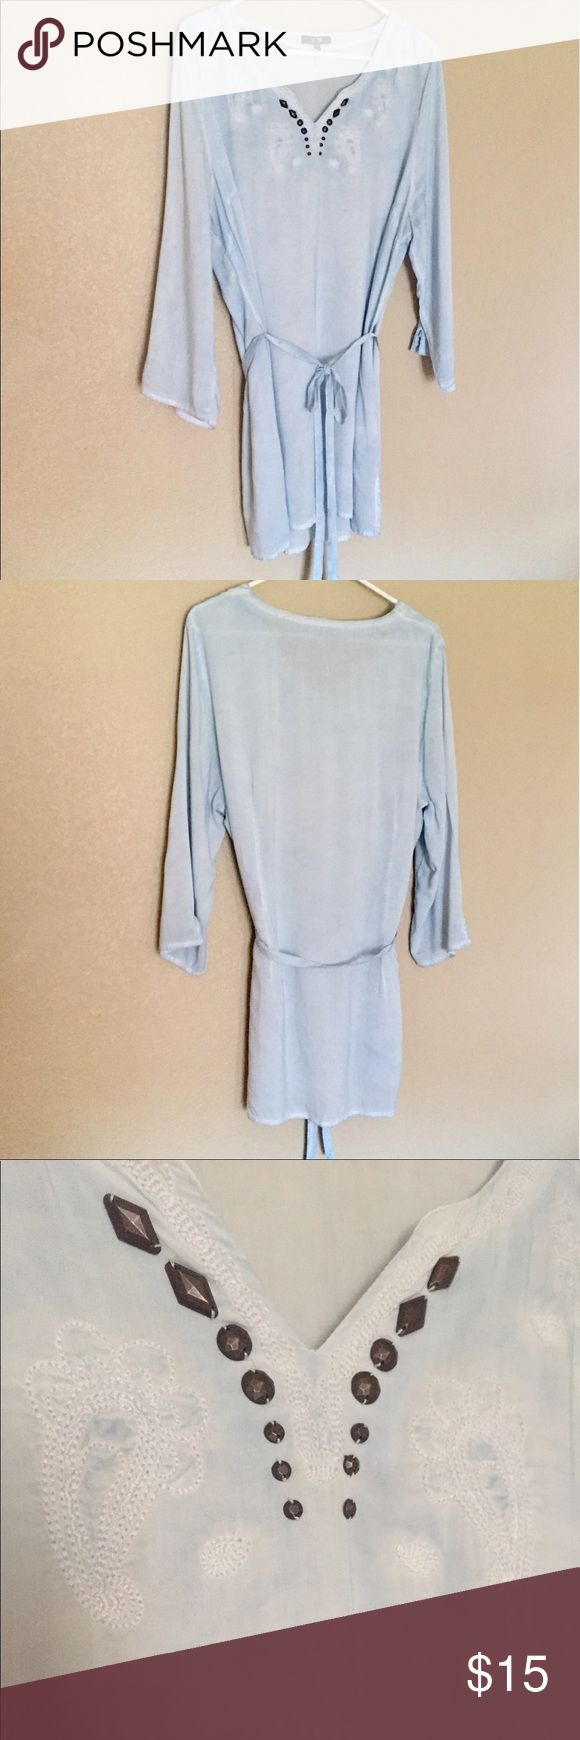 🔹BLOUSE/TUNIC🔹 Lovely lightweight blouse/tunic in excellent condition! Yest Tops Tunics